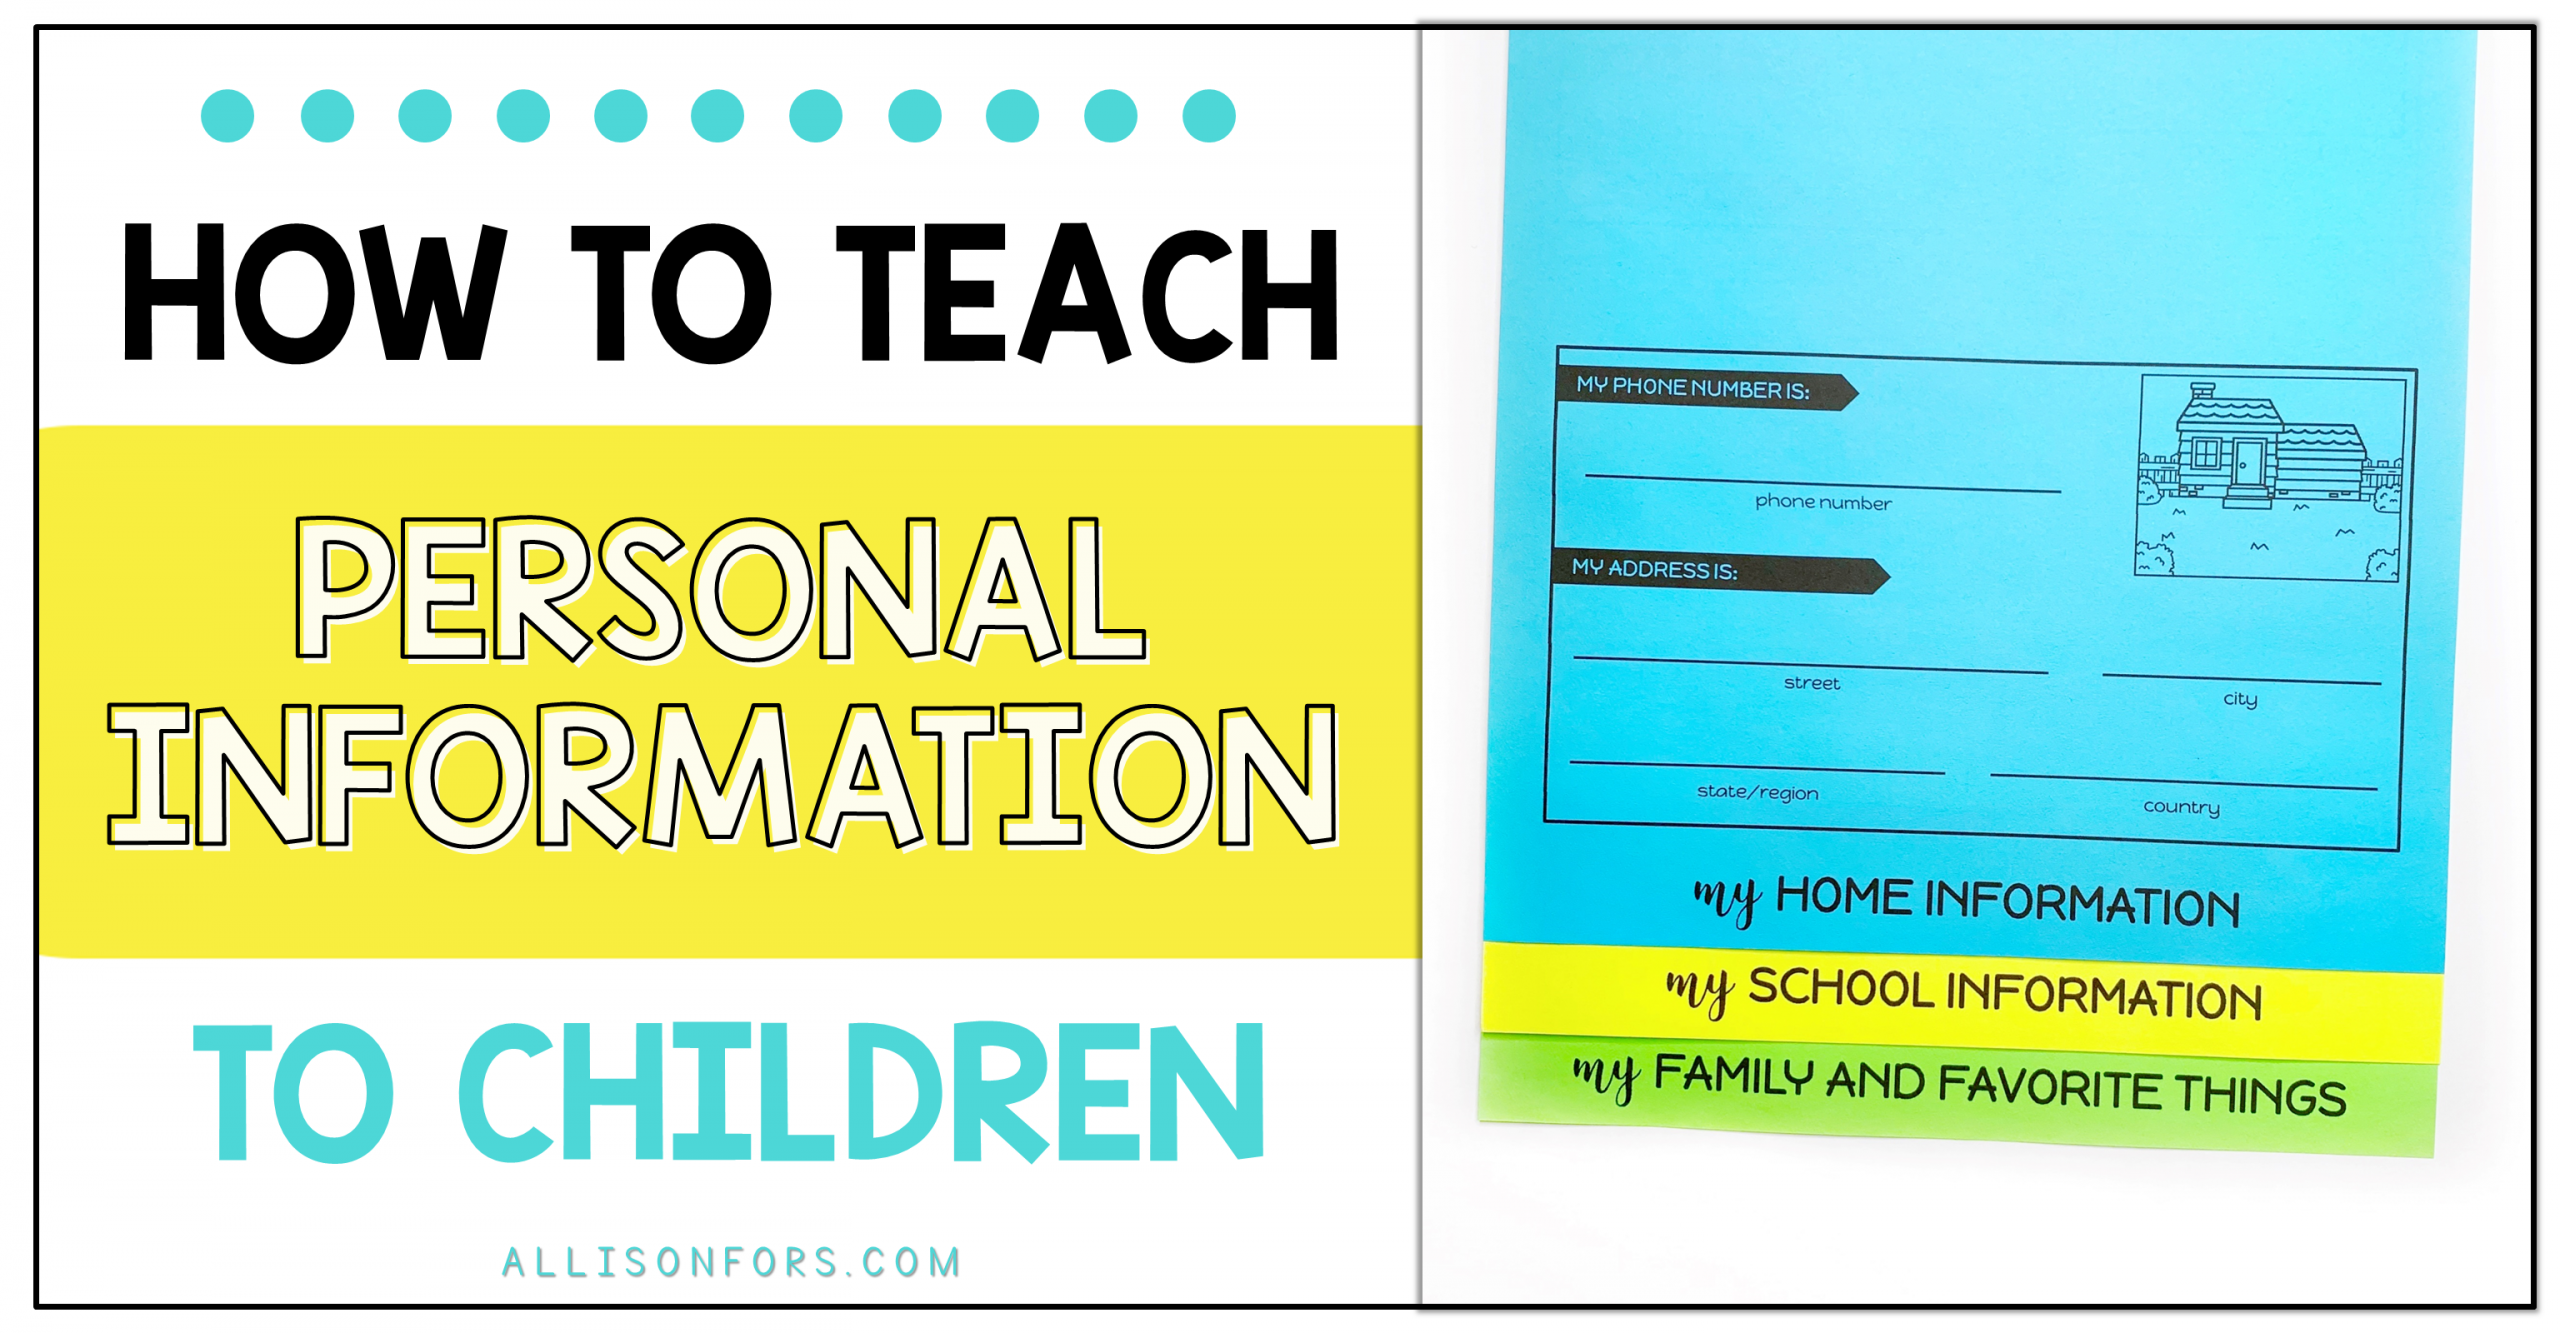 How to Teach Personal Information to Children